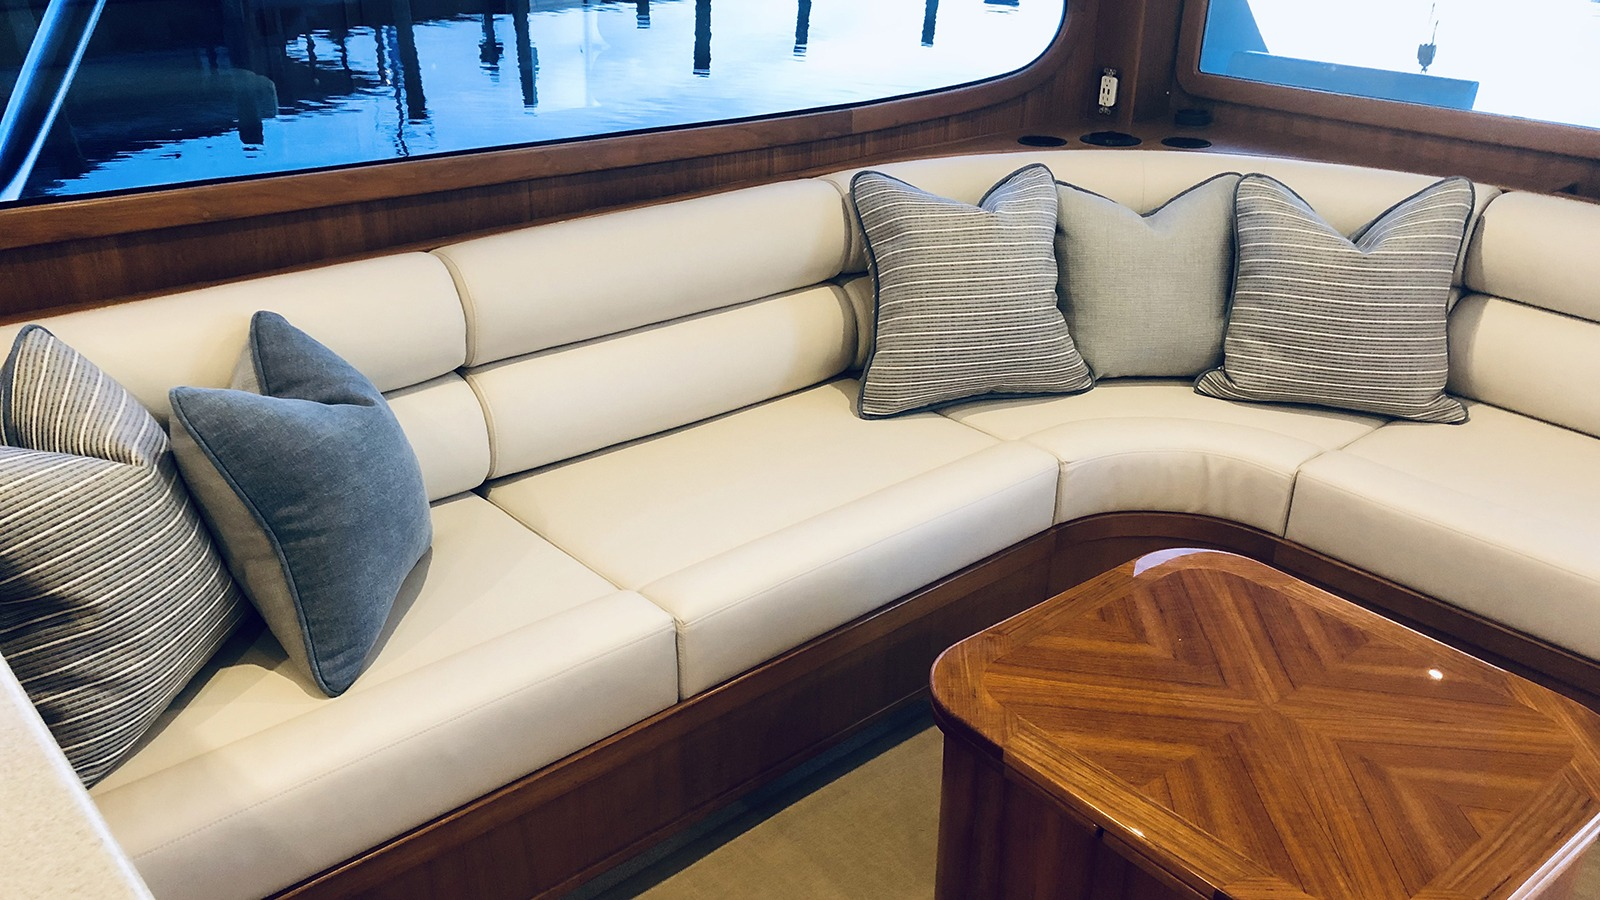 Tighten Up Sectional with Coffee Table